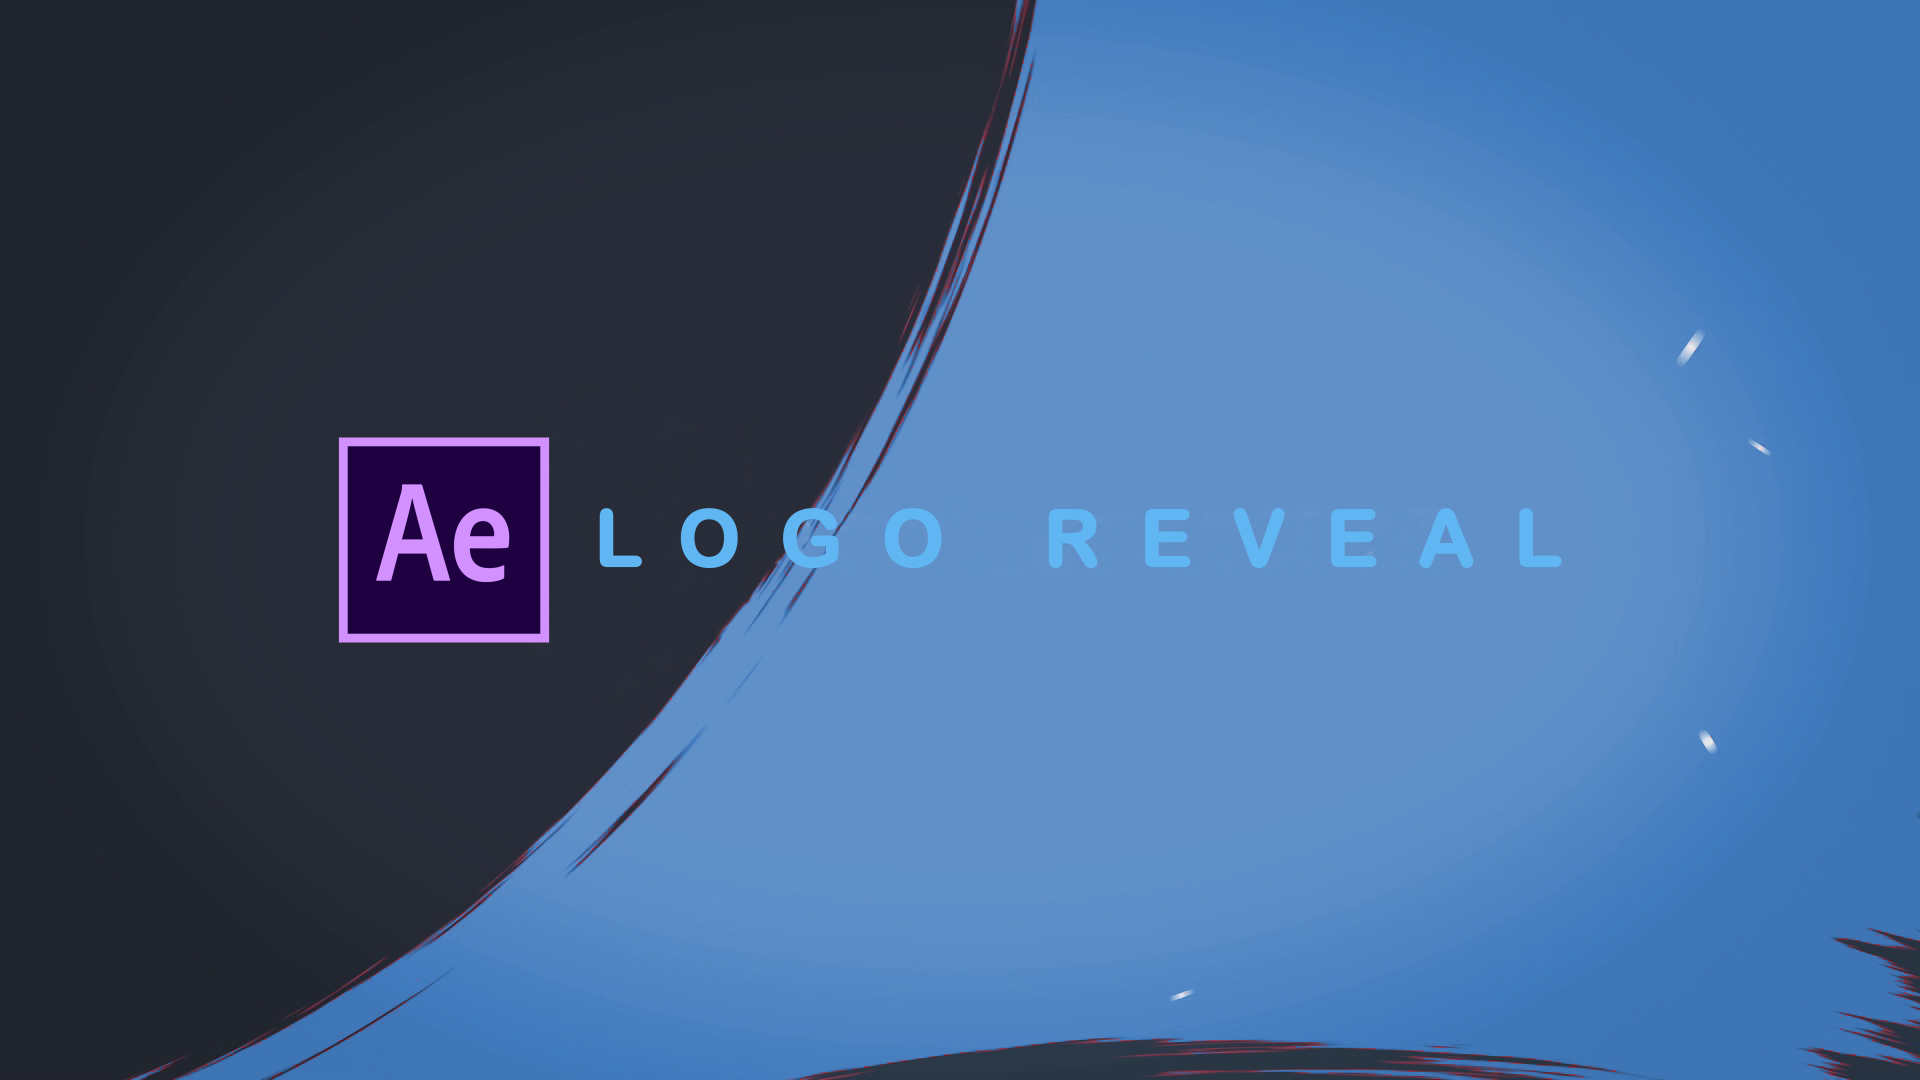 Logo Reveal After Effects.